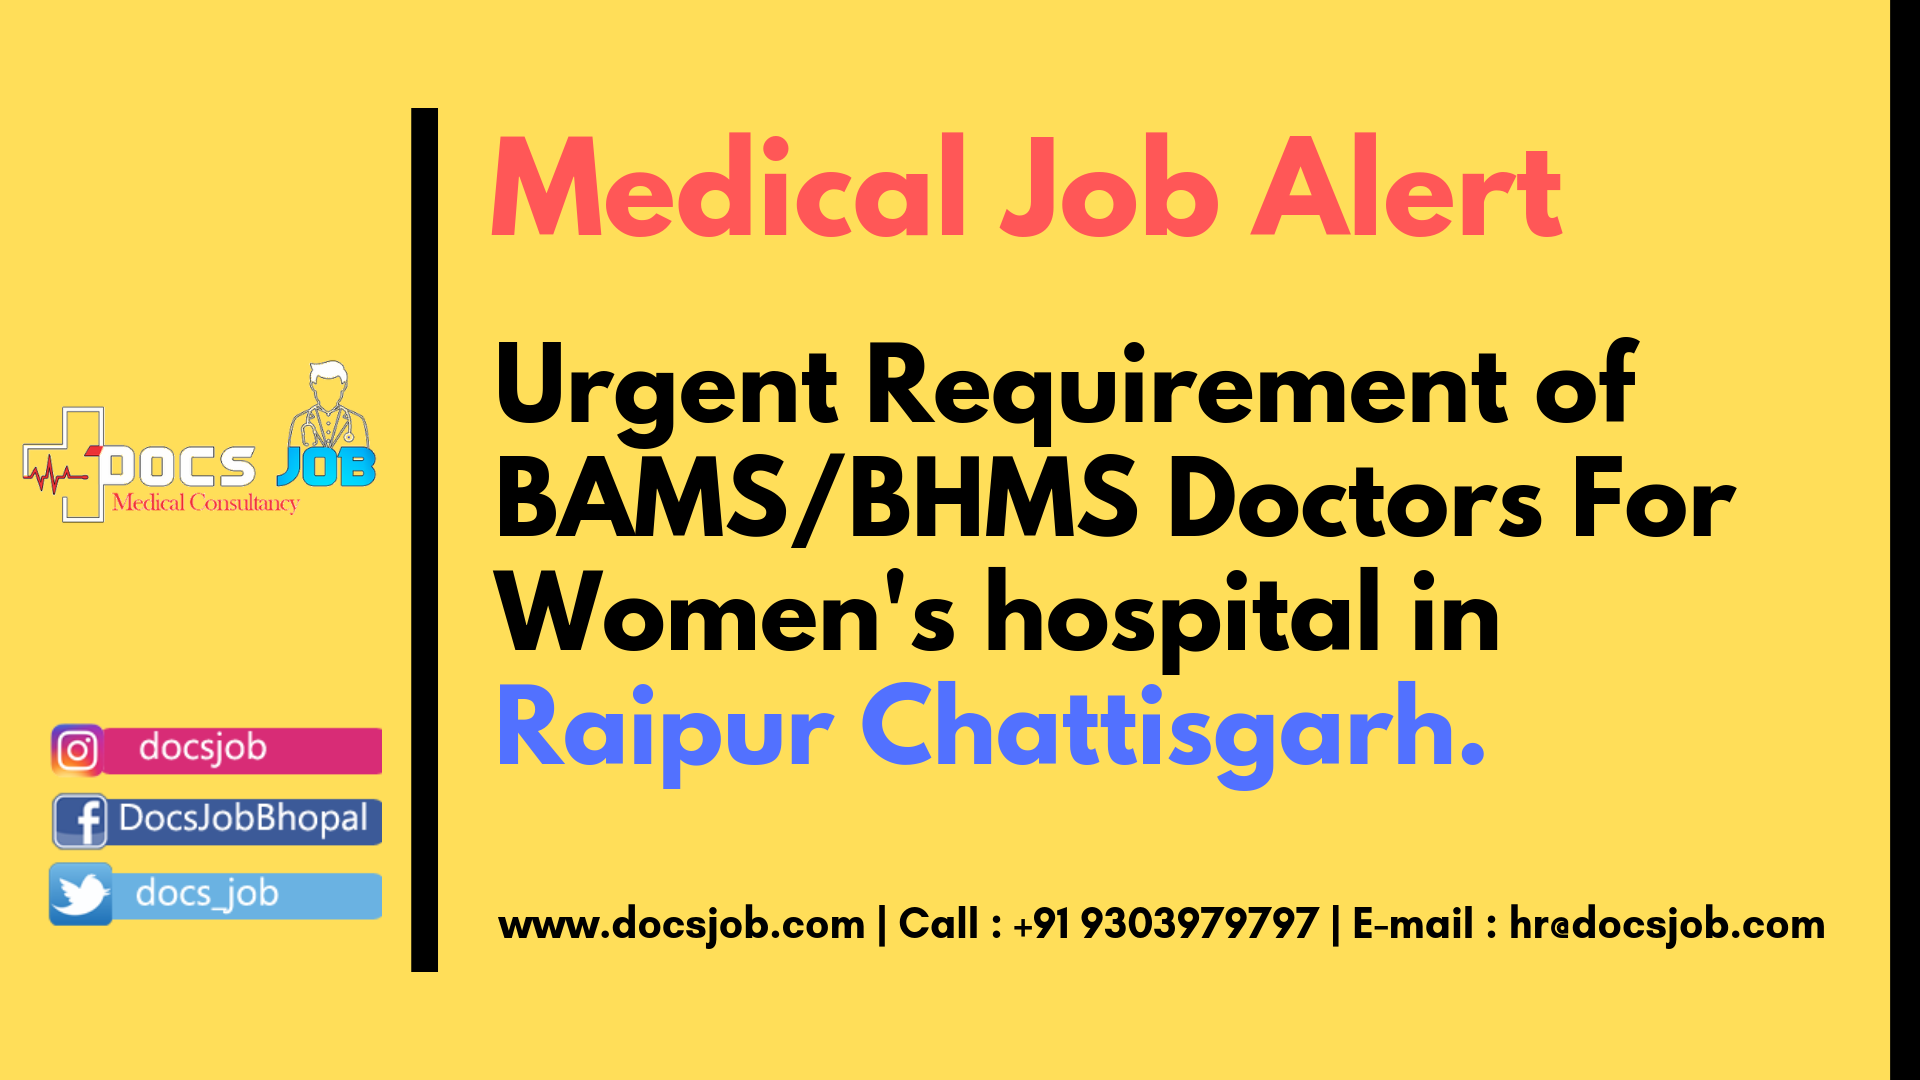 Pin by Docs Job on Medical Jobs in 2019 | Medical laboratory